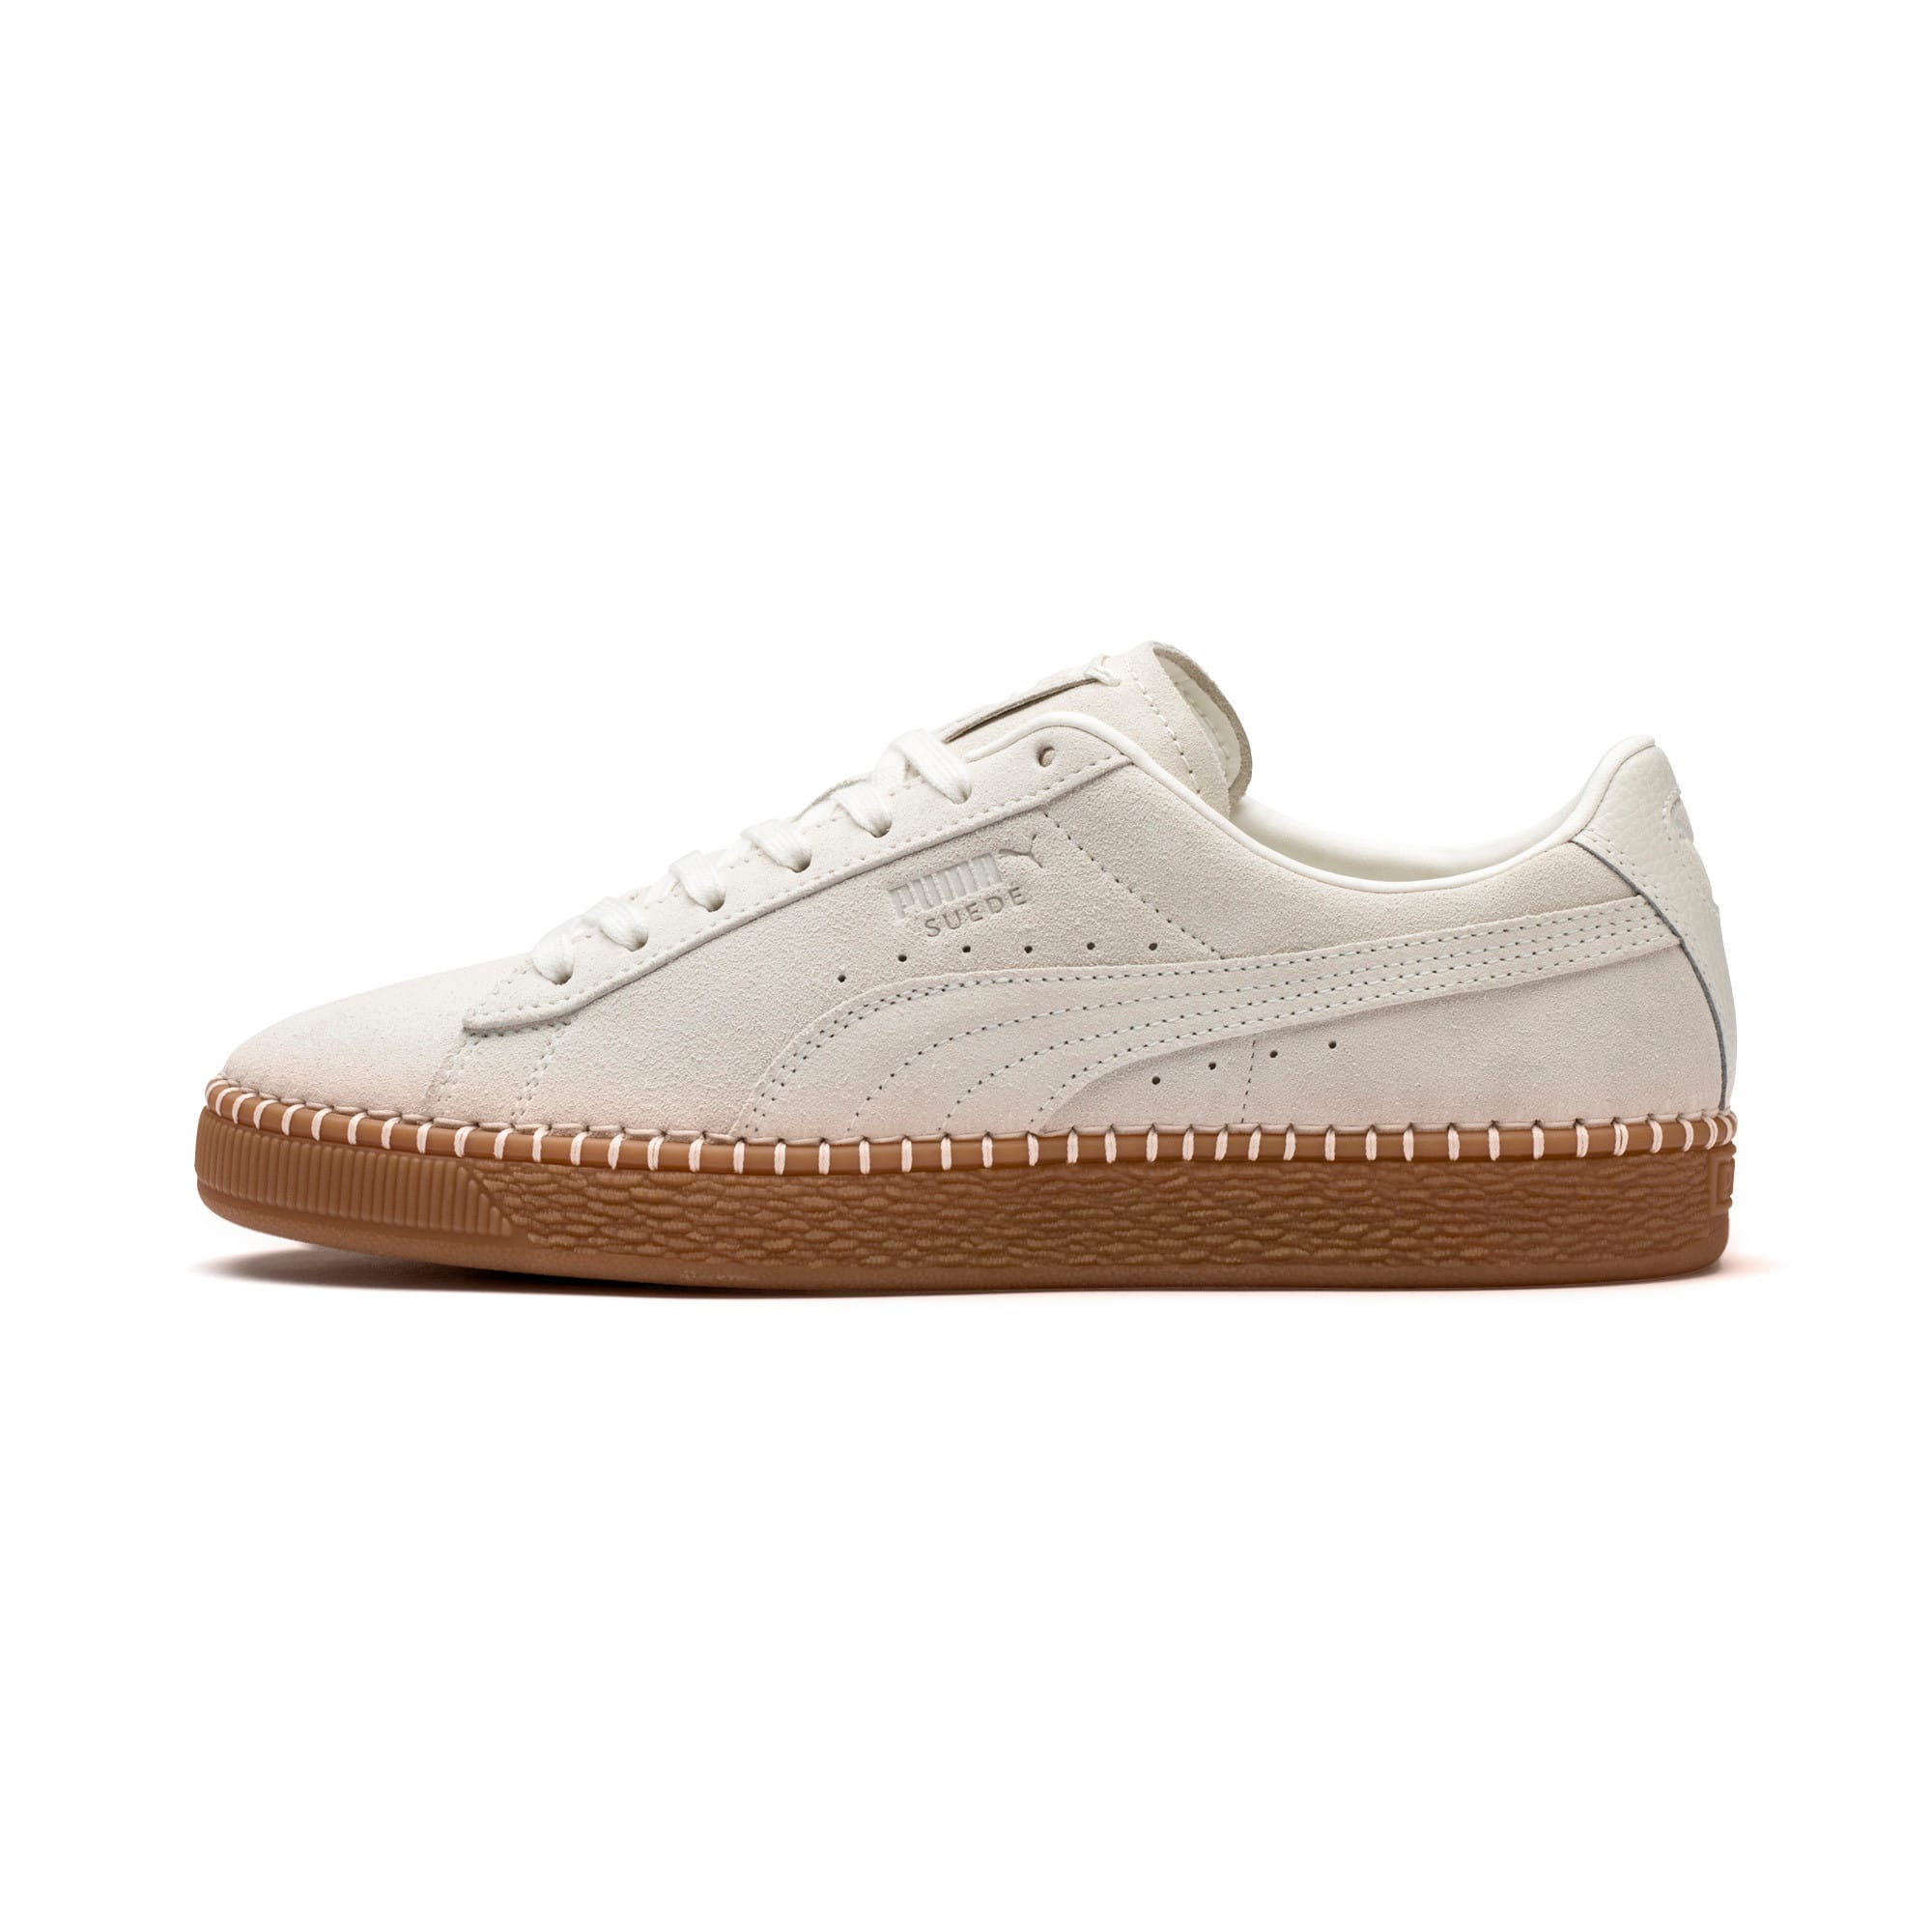 Thumbnail 1 of Suede Classic Blanket Stitch Trainers, Whisper White-Gum, medium-IND